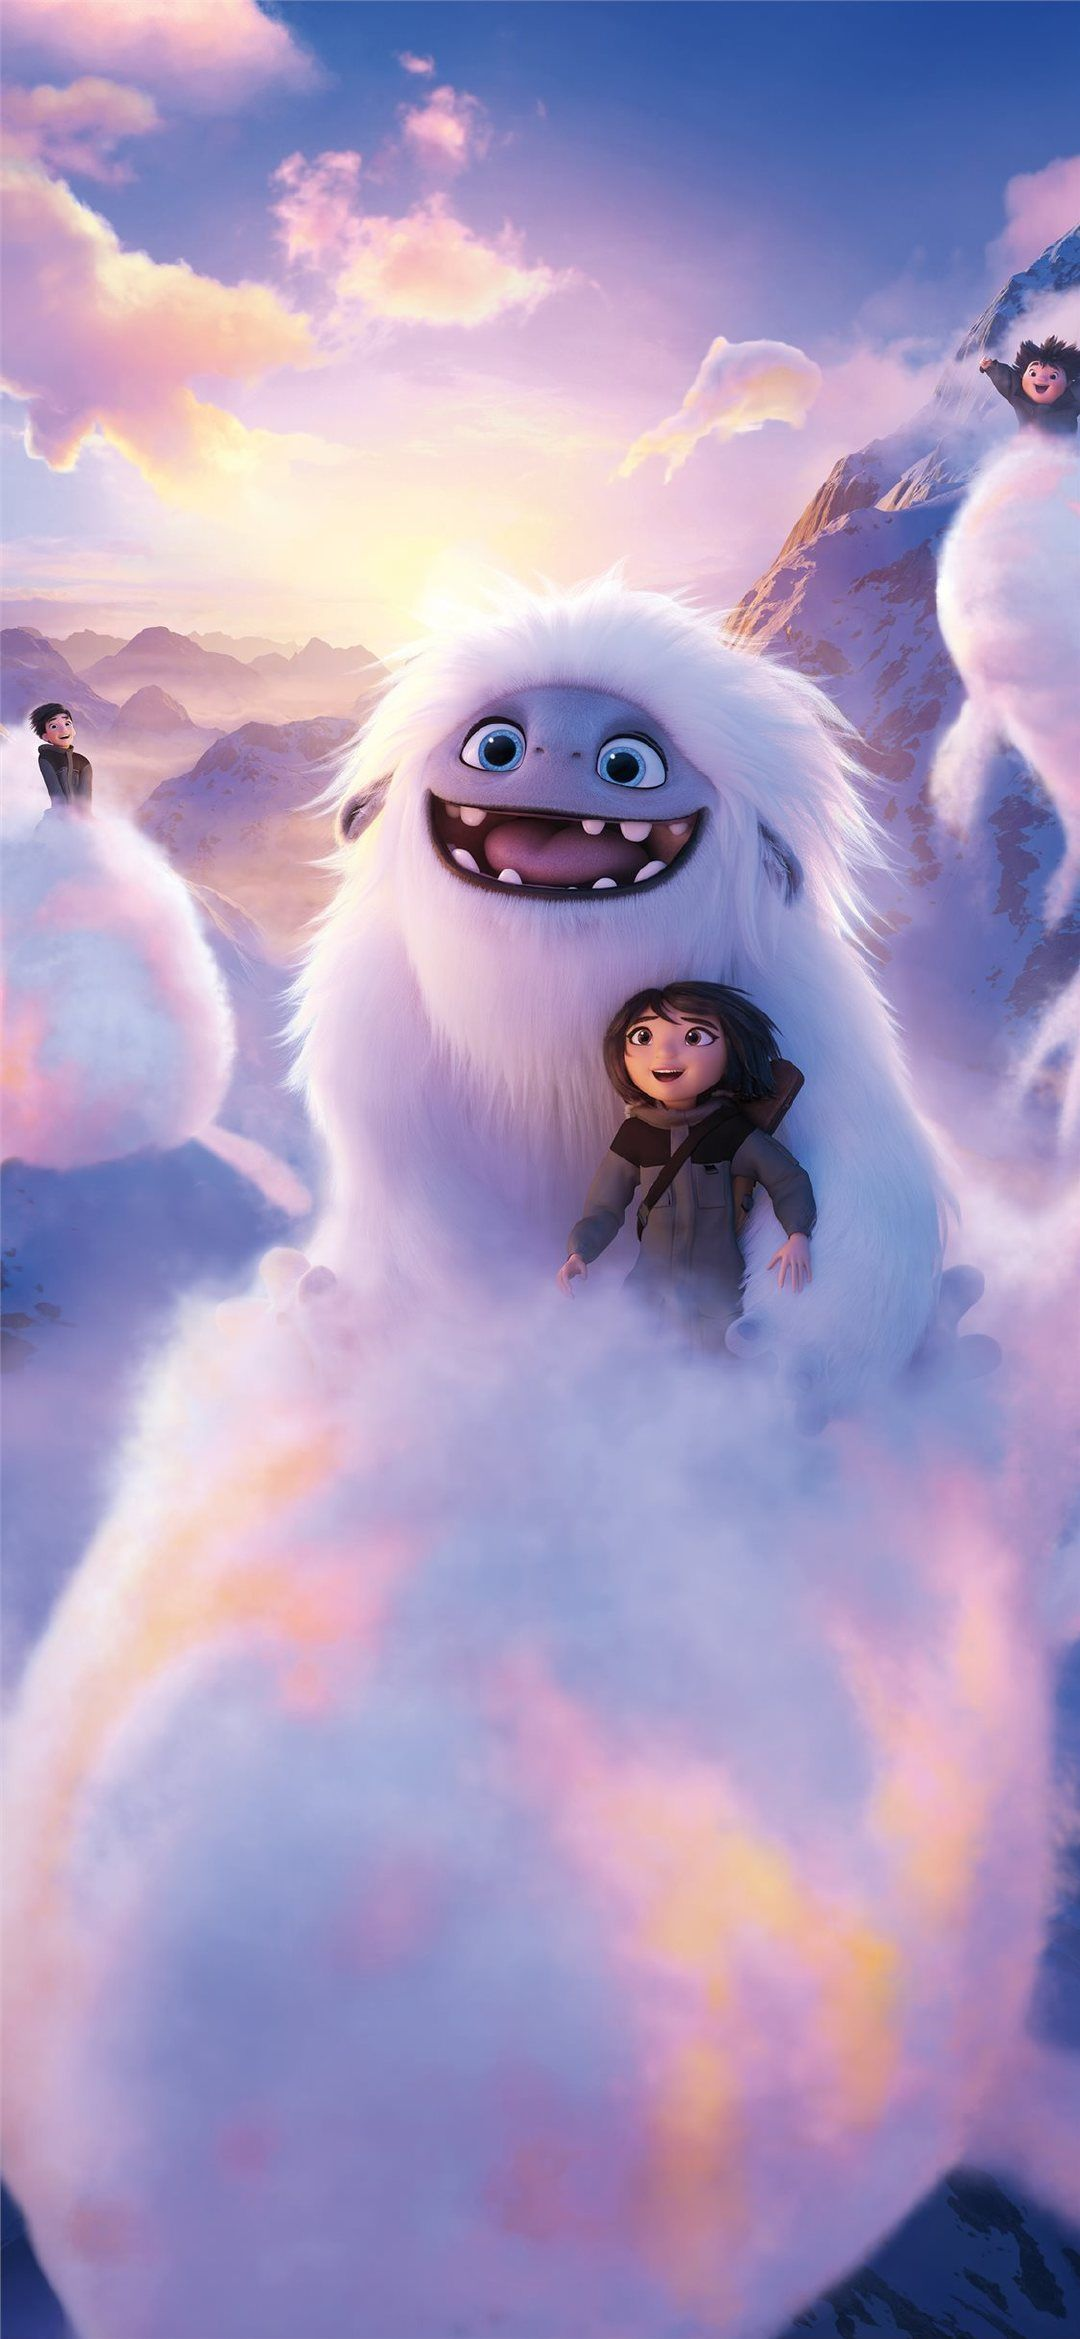 Iphone 11 Wallpaper Abominable Movie 8k Iphone 11 Wallpaper Abominable 2019movies Animatedmovies In 2020 Cartoon Wallpaper Hd Cartoon Wallpaper Cute Disney Drawings